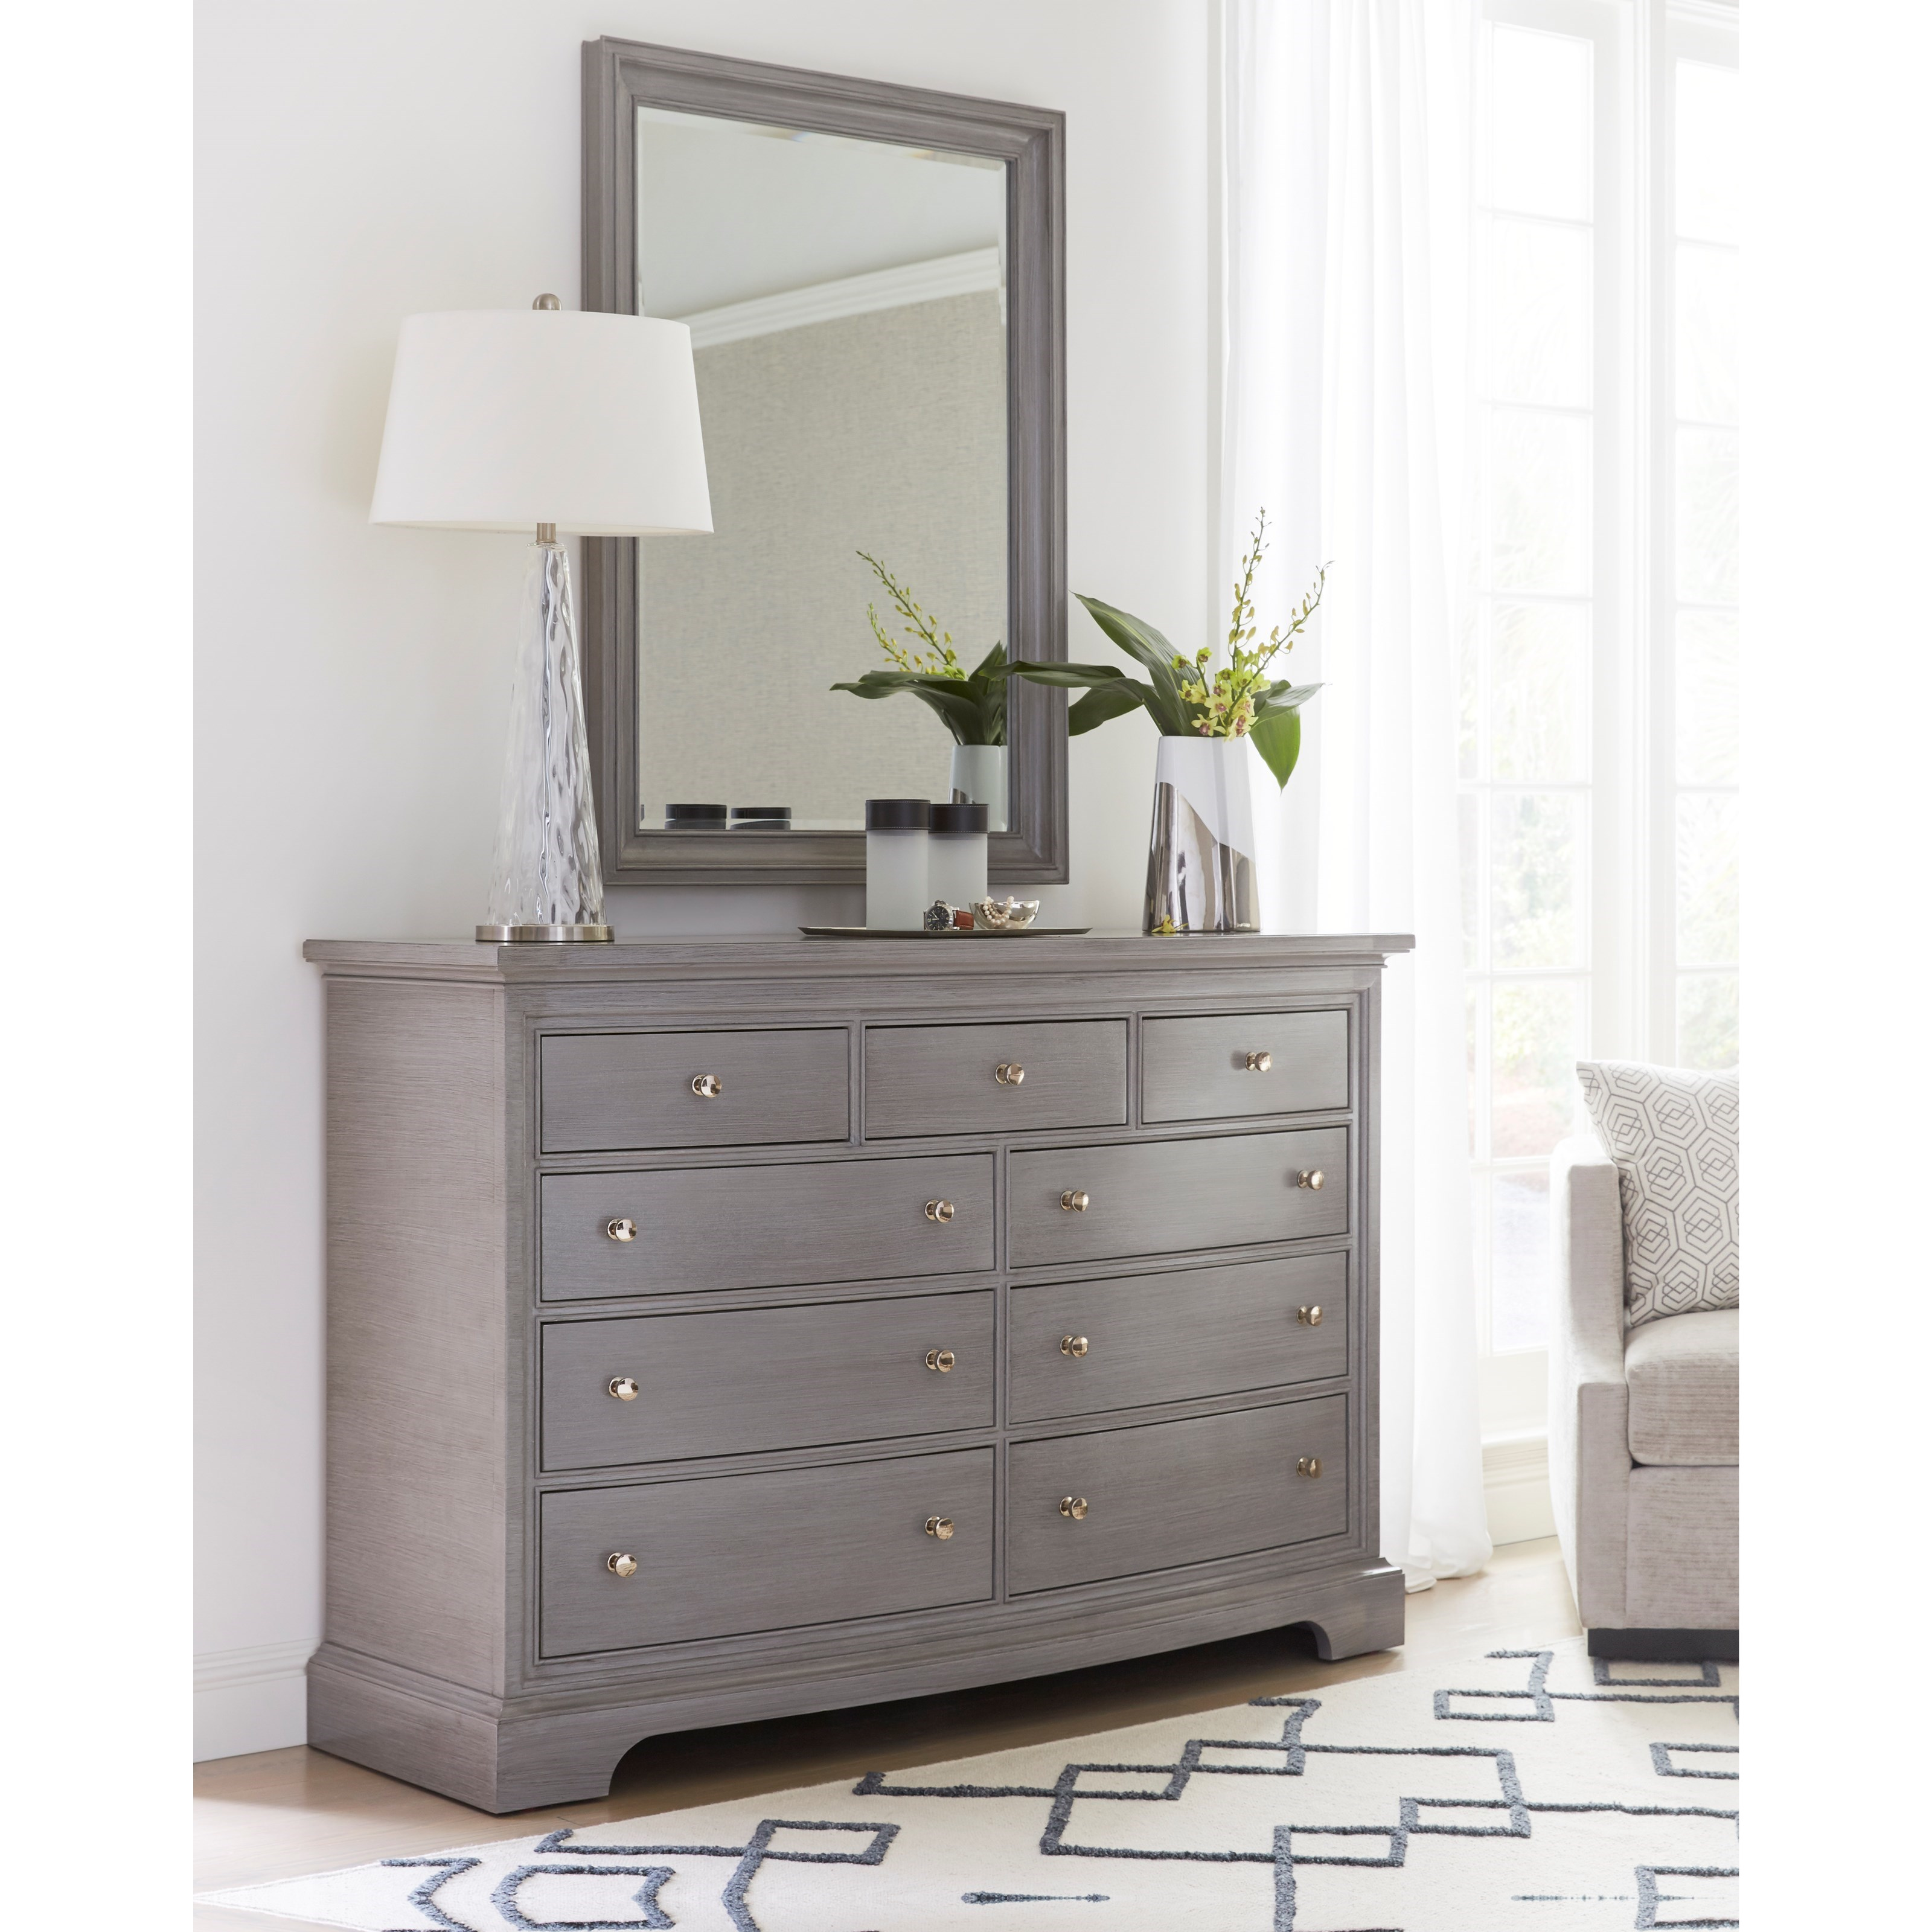 Stanley Furniture Transitional Dresser with Mirror - Item Number: 042-33-05+30